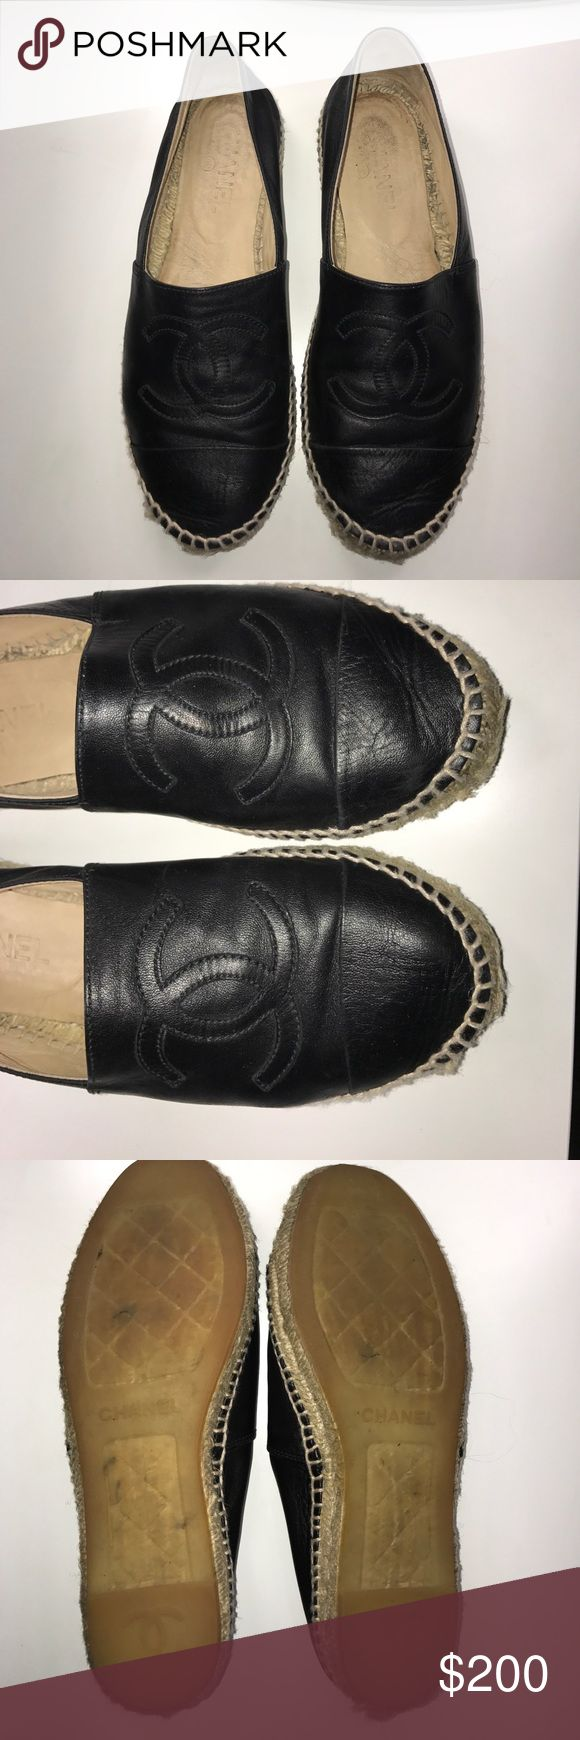 100% AUTH Chanel black espadrilles used no box 100% AUTH Chanel black espadrilles used comes with no box originally 595$ CHANEL Shoes Espadrilles